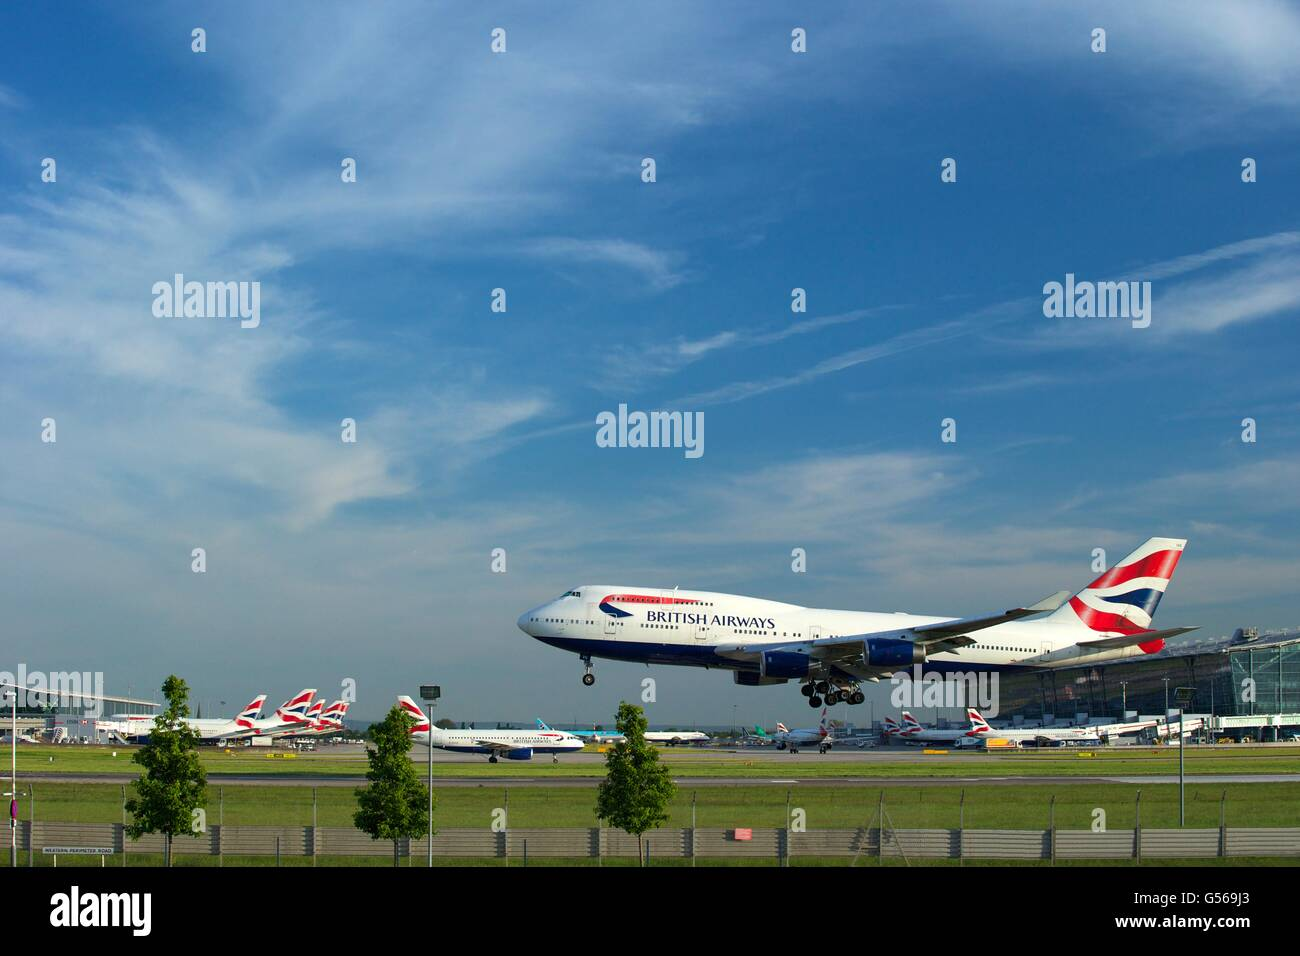 British AIrways flight landing at Heathrow Airport with Terminal 5 behind, London, England, UK, GB, - Stock Image